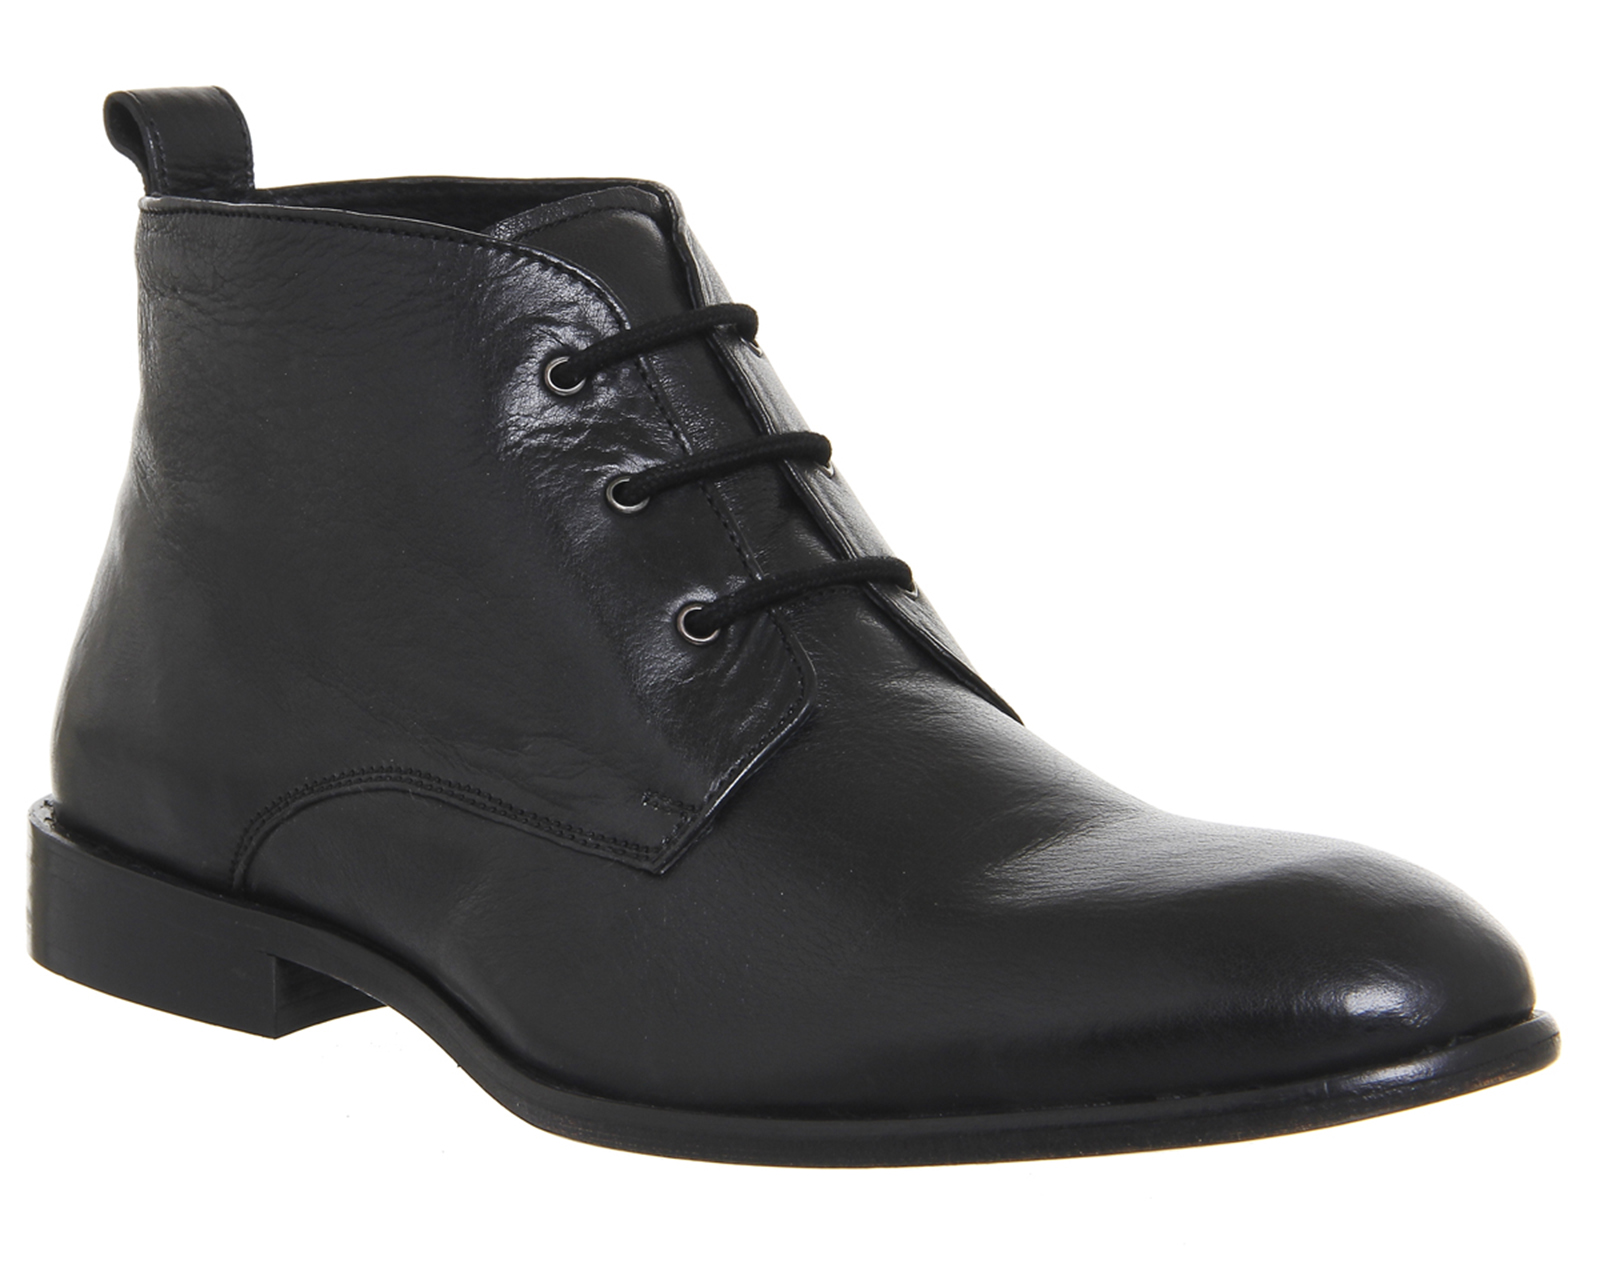 mens office black leather ankle boots uk size 9 ex